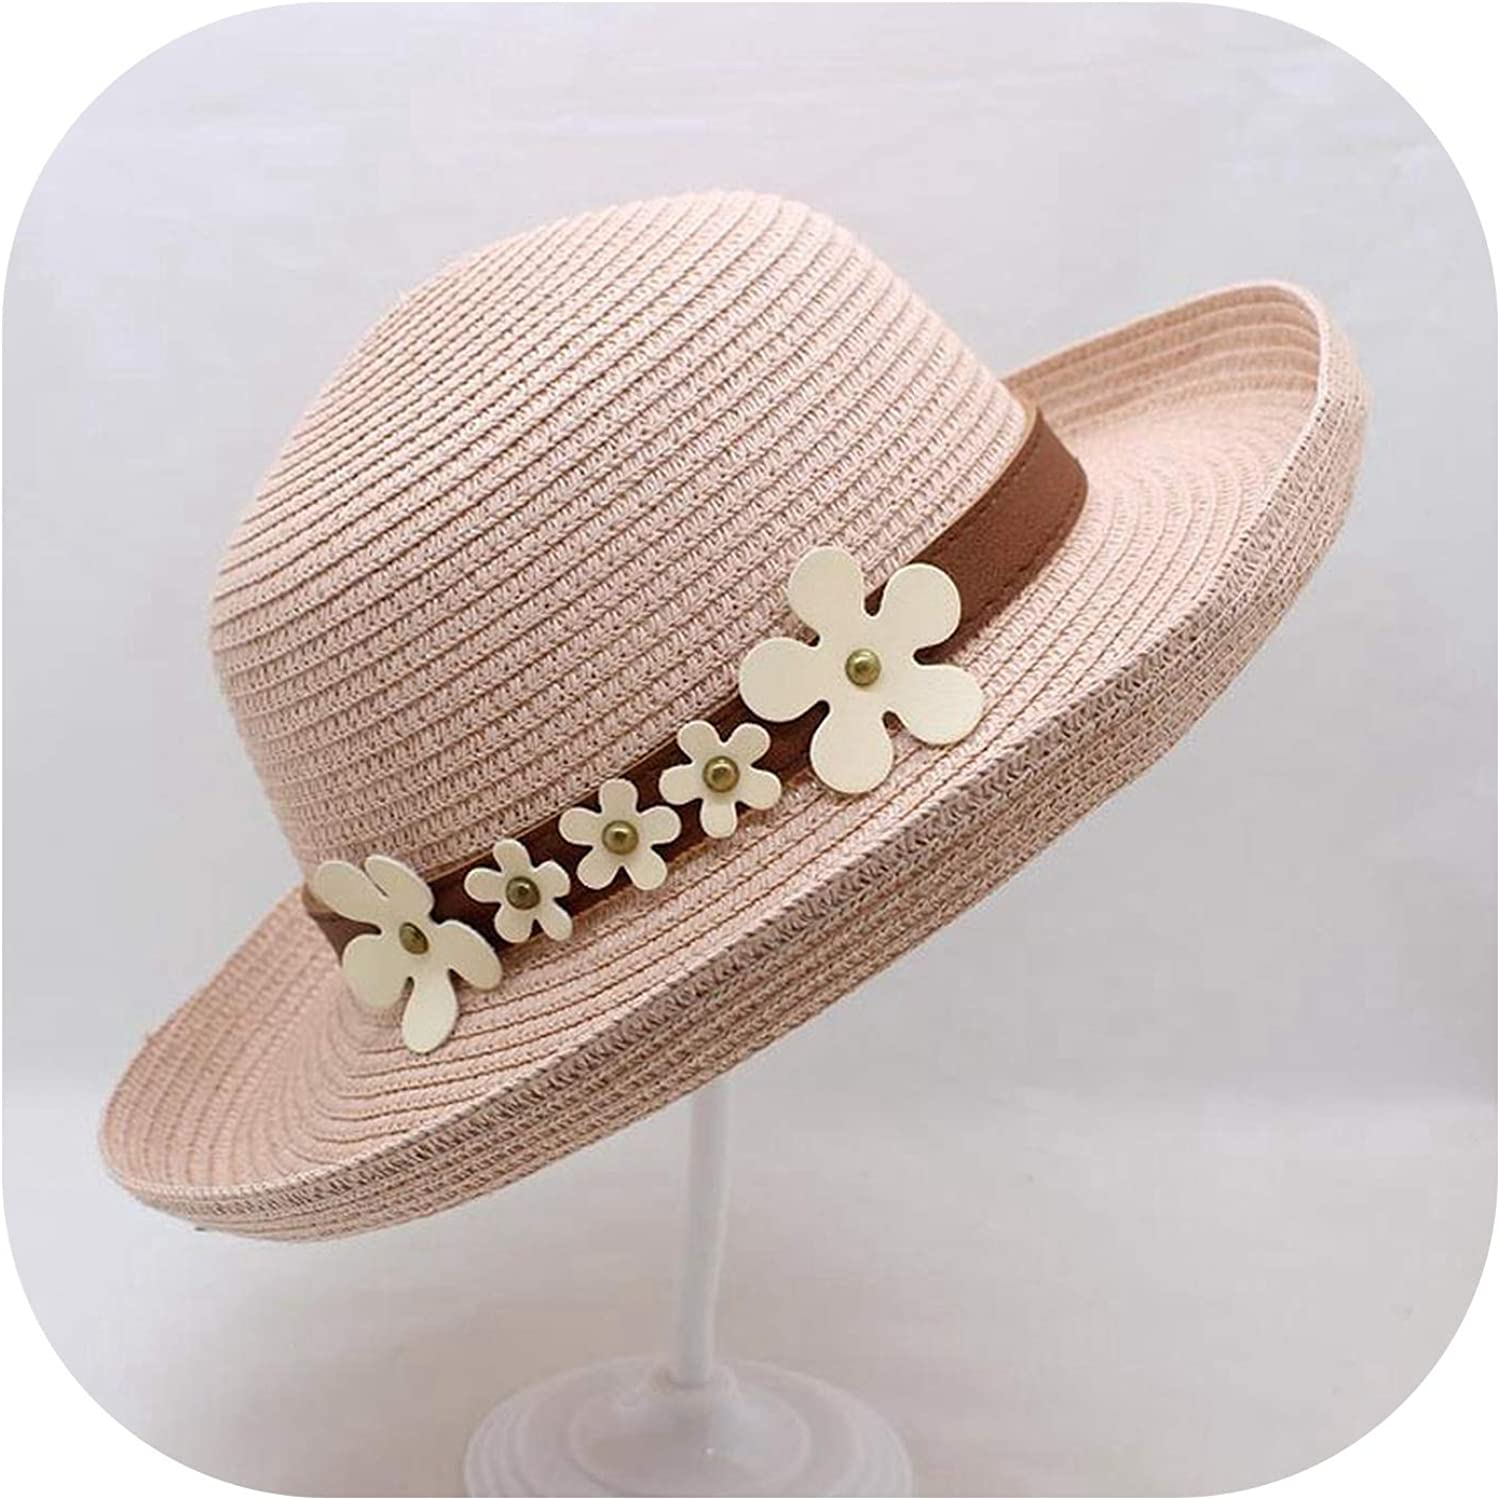 1 Pcs New Adults and Kids Summer Sun Hat Belts and Flowers Straw Hat Beach Caps Head Girth 5 Colors